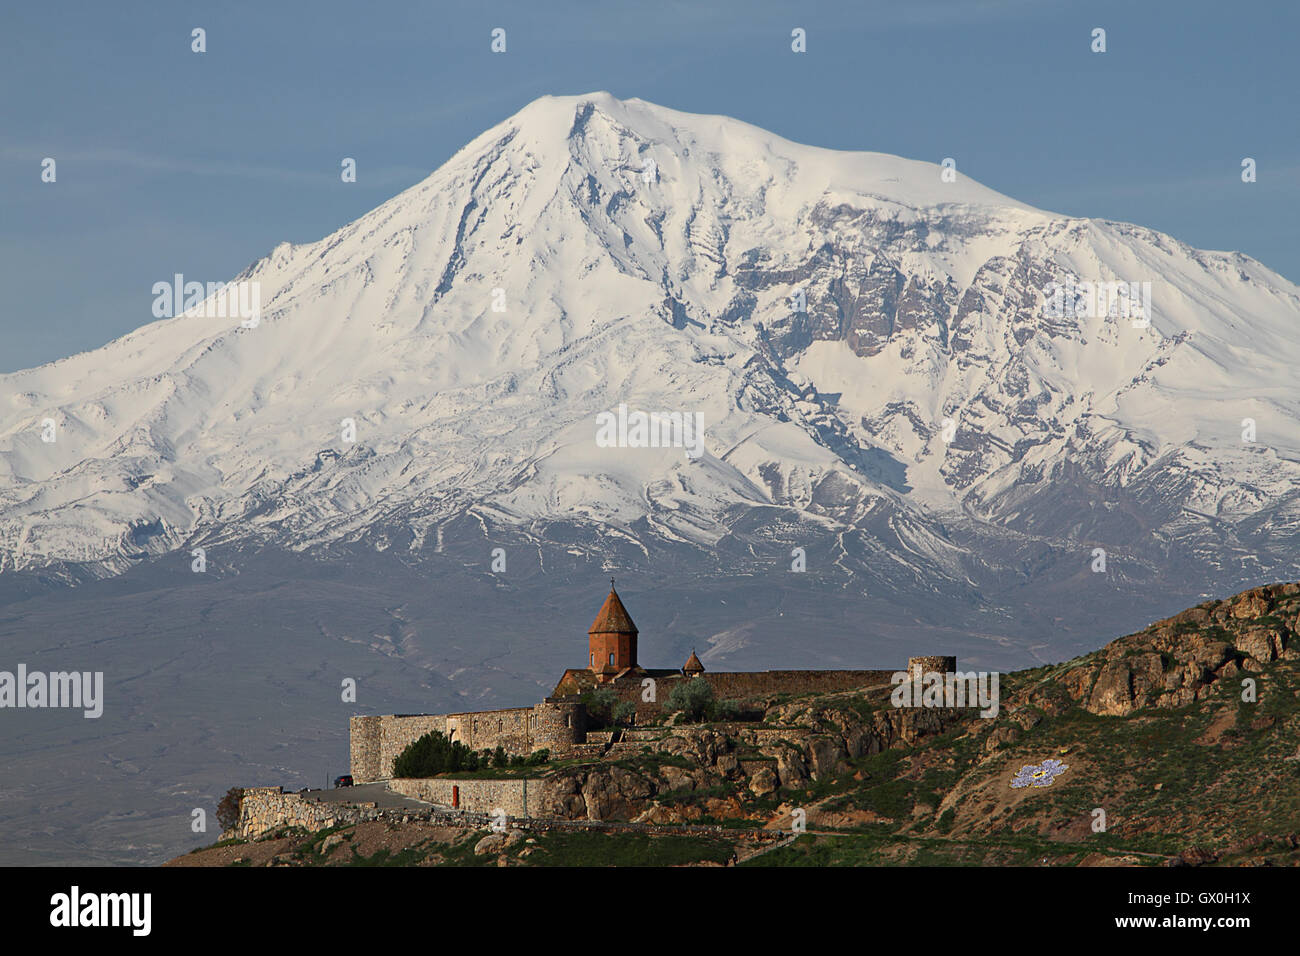 Monastery of Khor Virap in Armenia with the Mount Ararat in the background, at the centennial of the armenian genocide - Stock Image